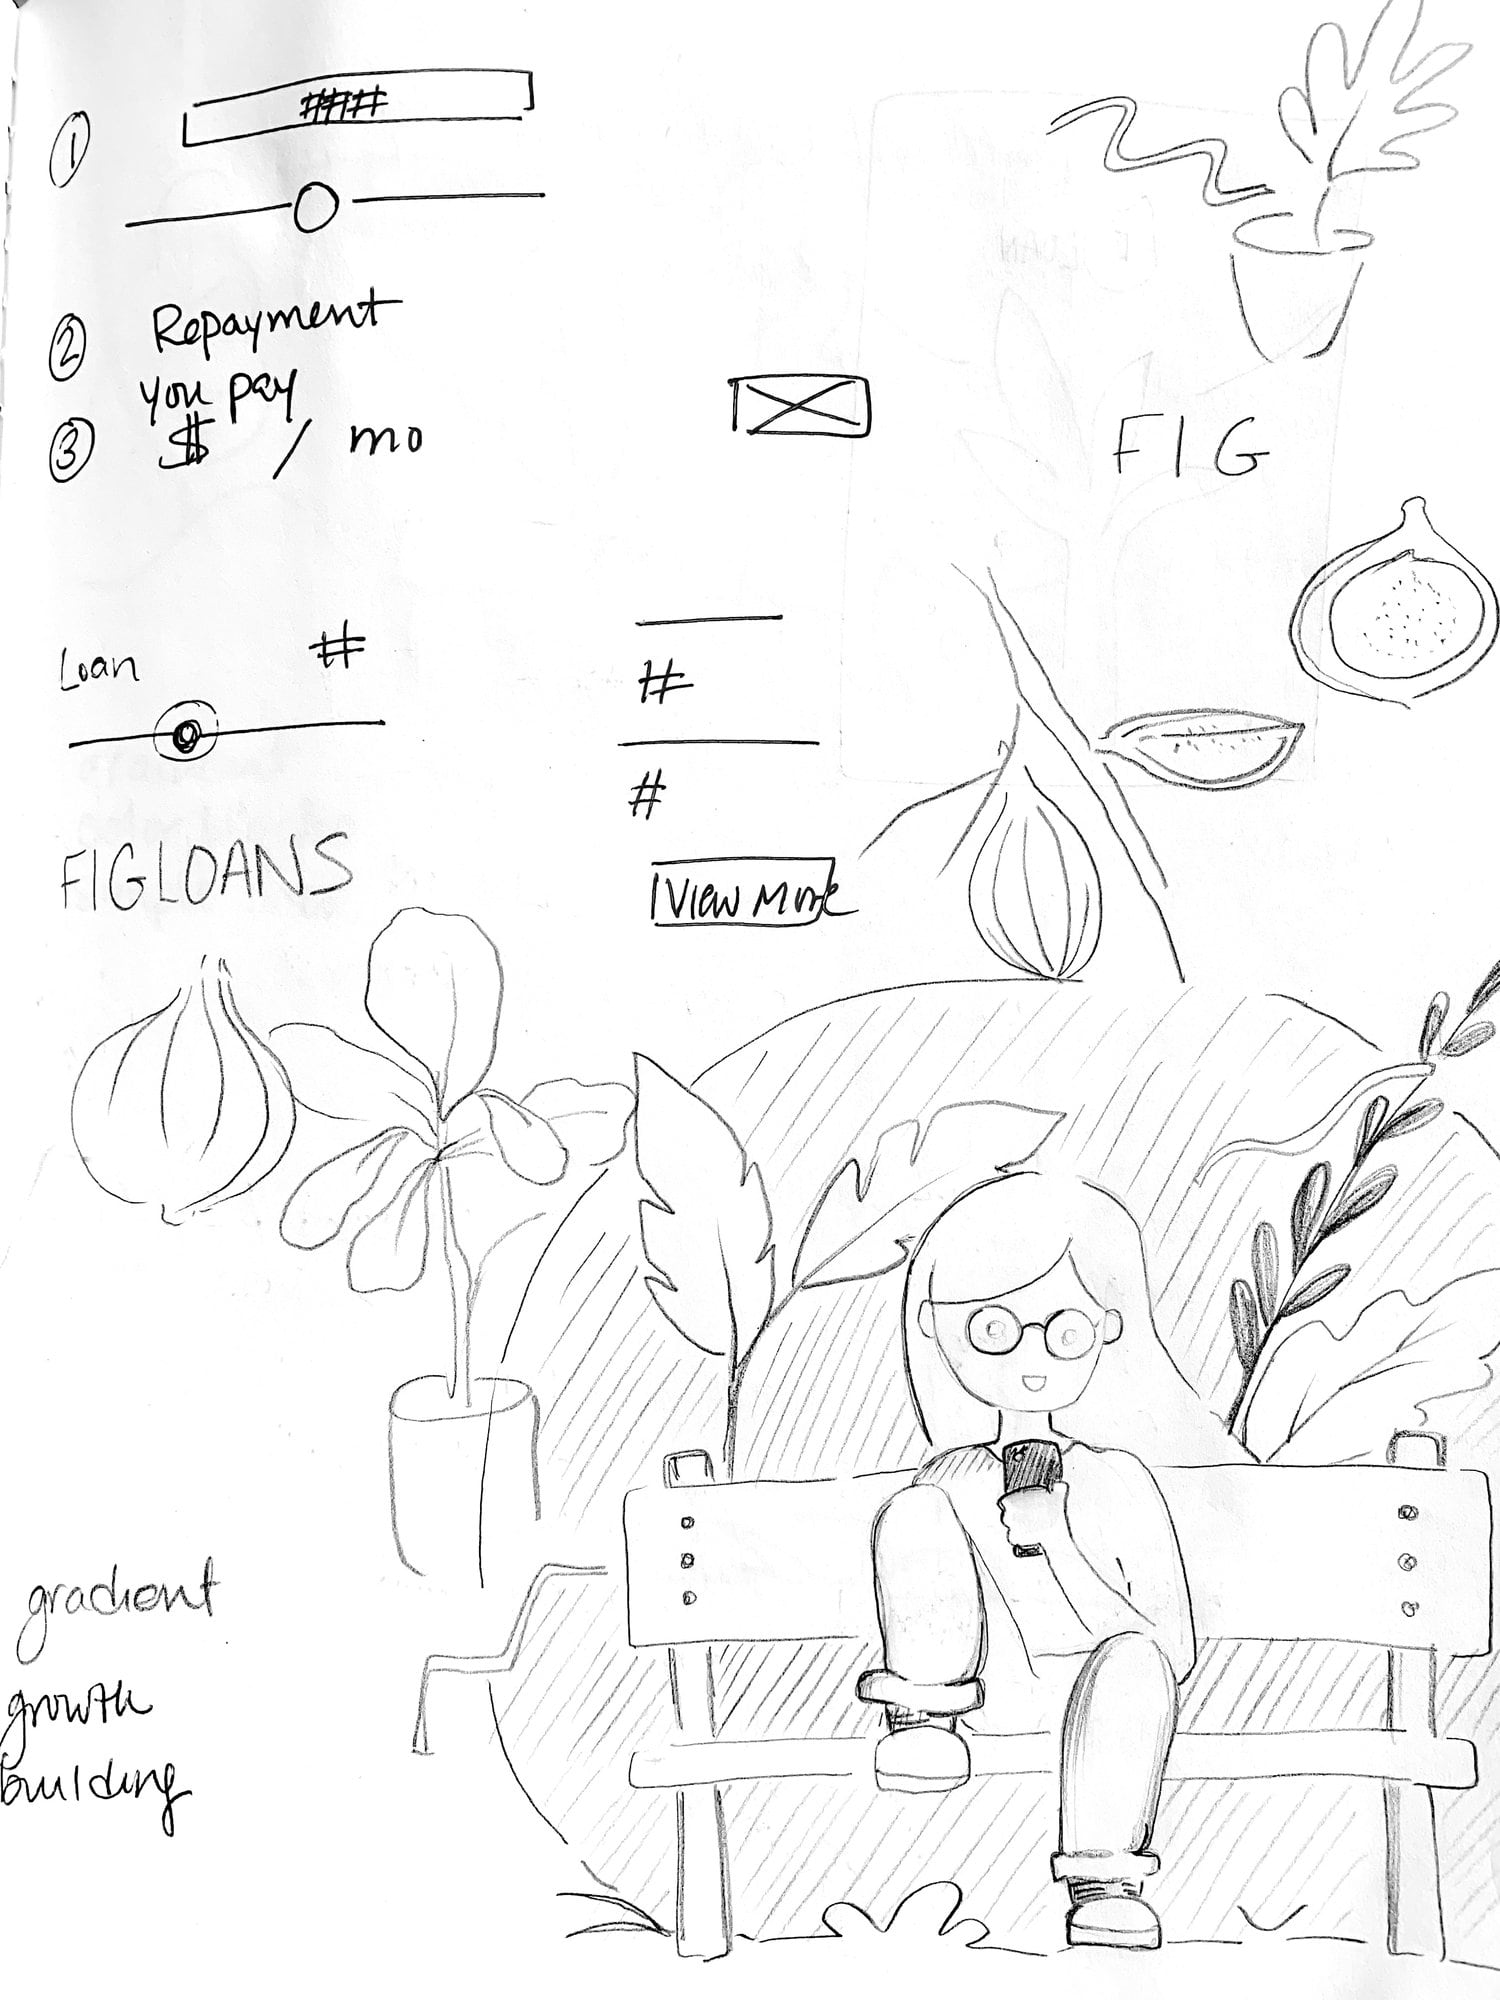 FigTech Illustrator/Product Design